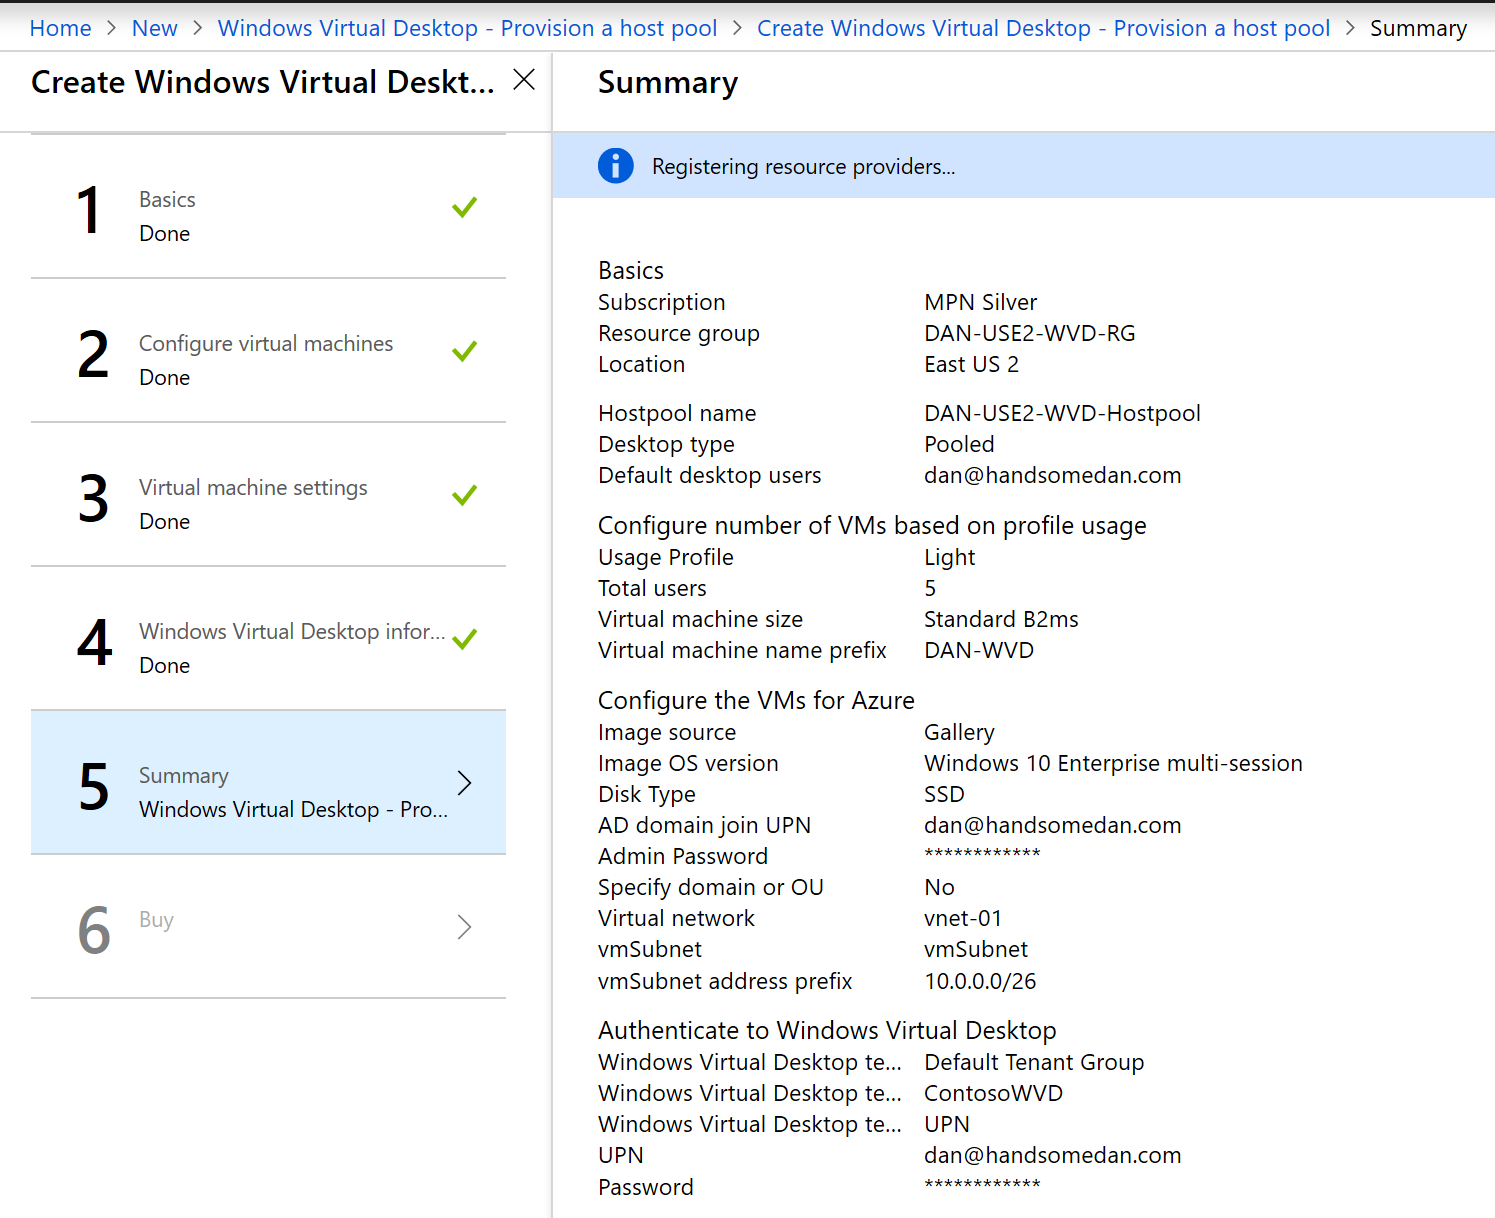 Deploy Windows Virtual Desktop in Azure Confirmation Screen